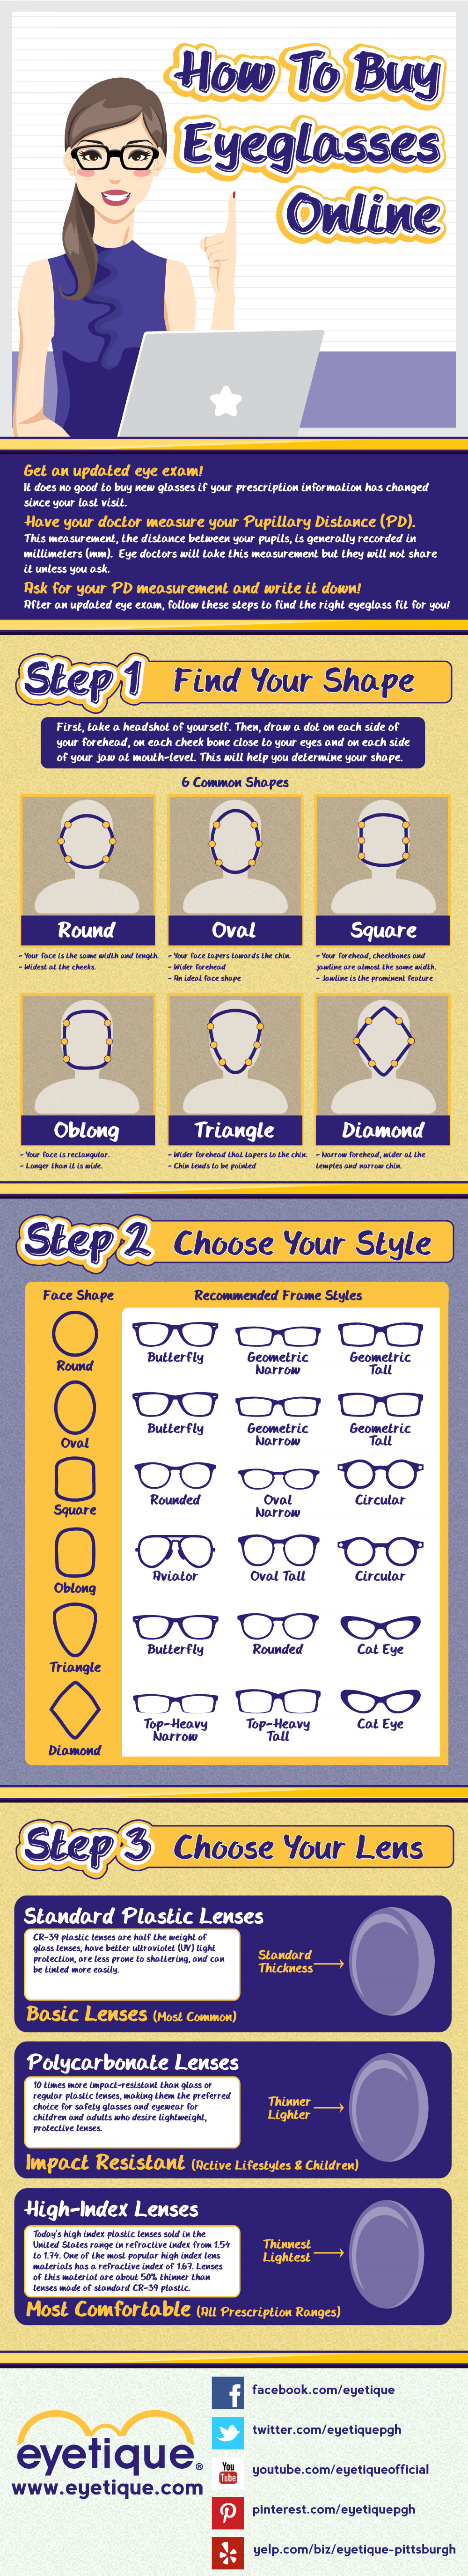 How to Buy Eyeglasses Online Infographic